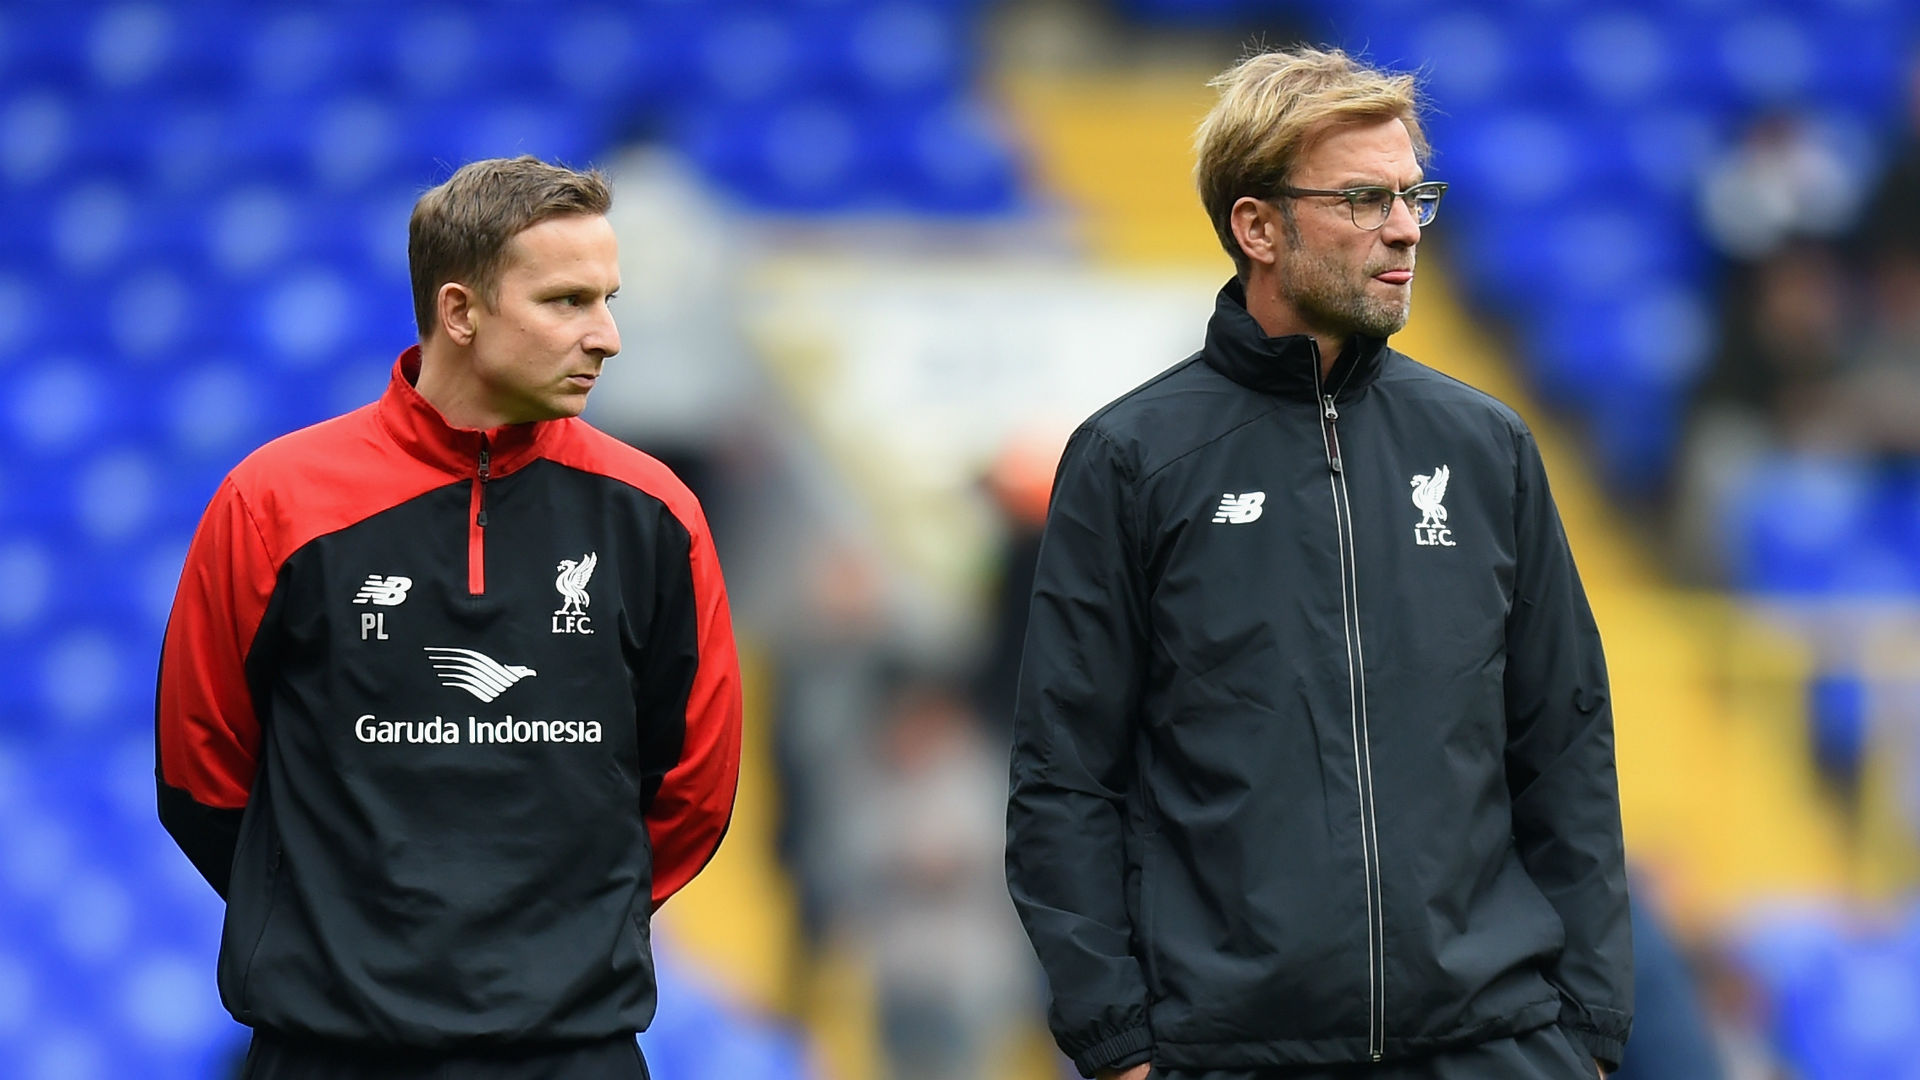 Coach Pepijn Lijnders returns to Liverpool following NEC exit